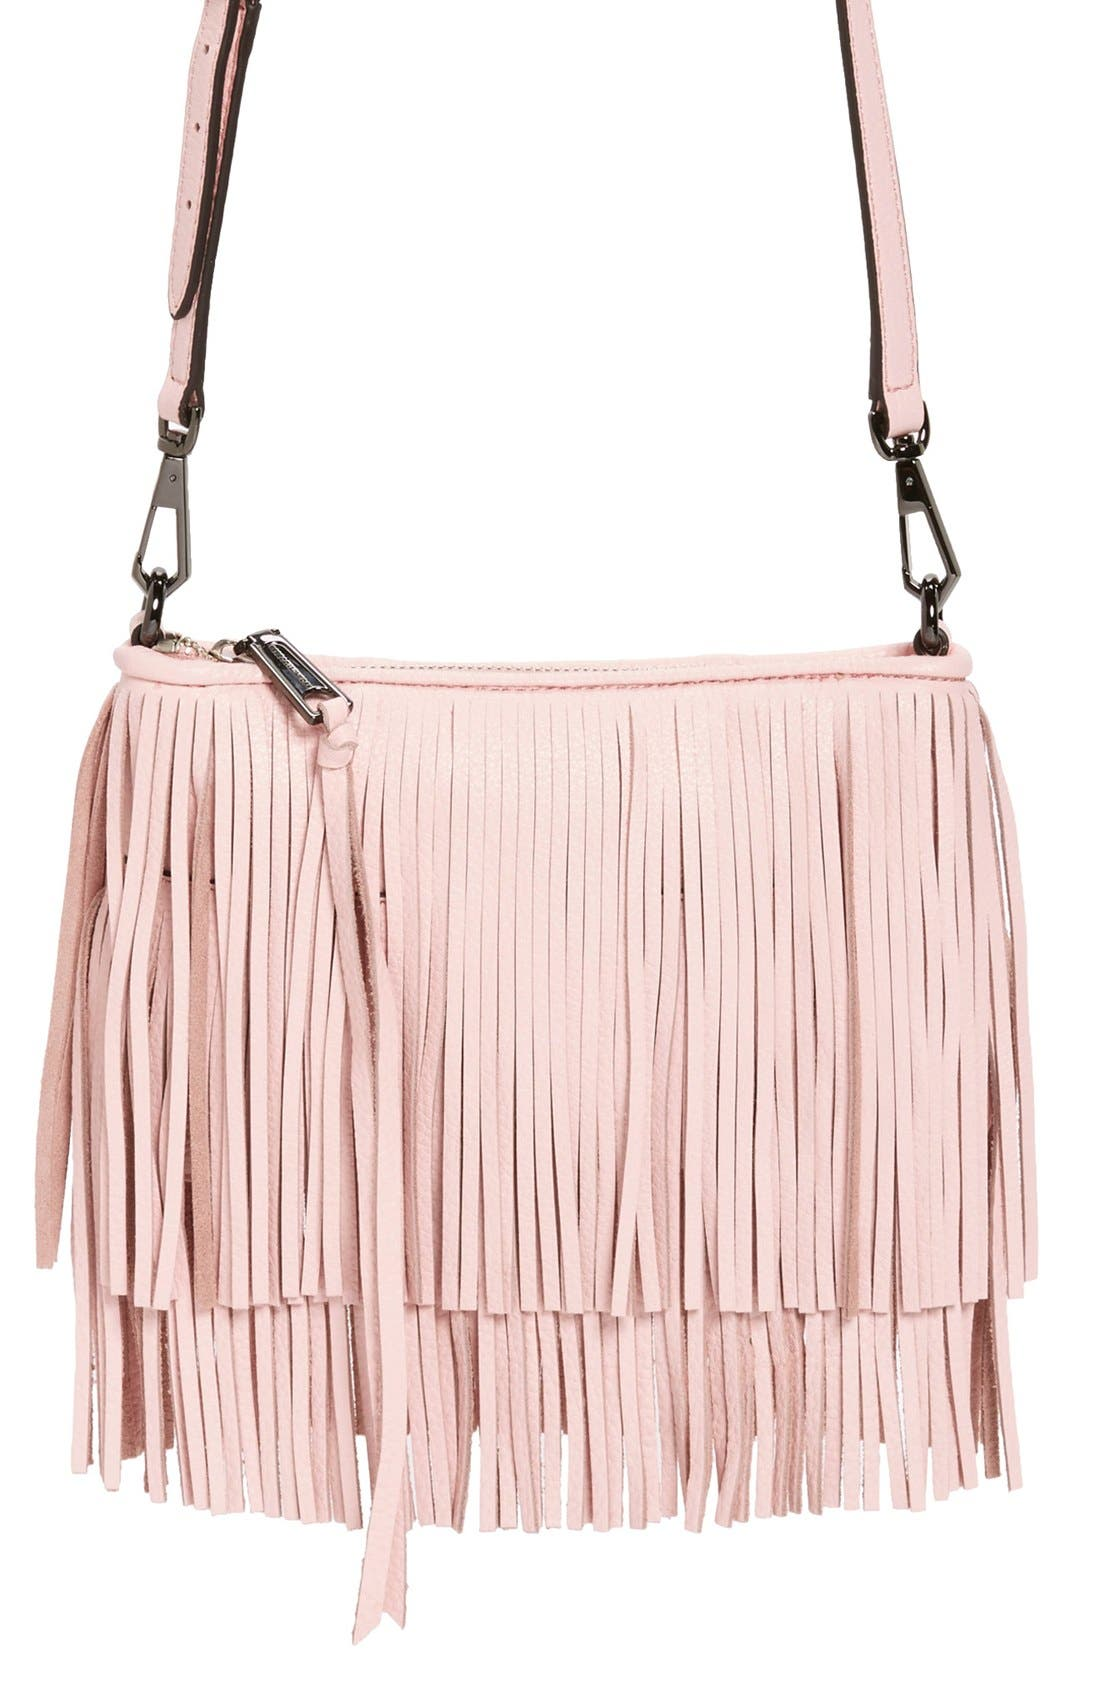 Main Image - Rebecca Minkoff 'Finn' Convertible Leather Clutch